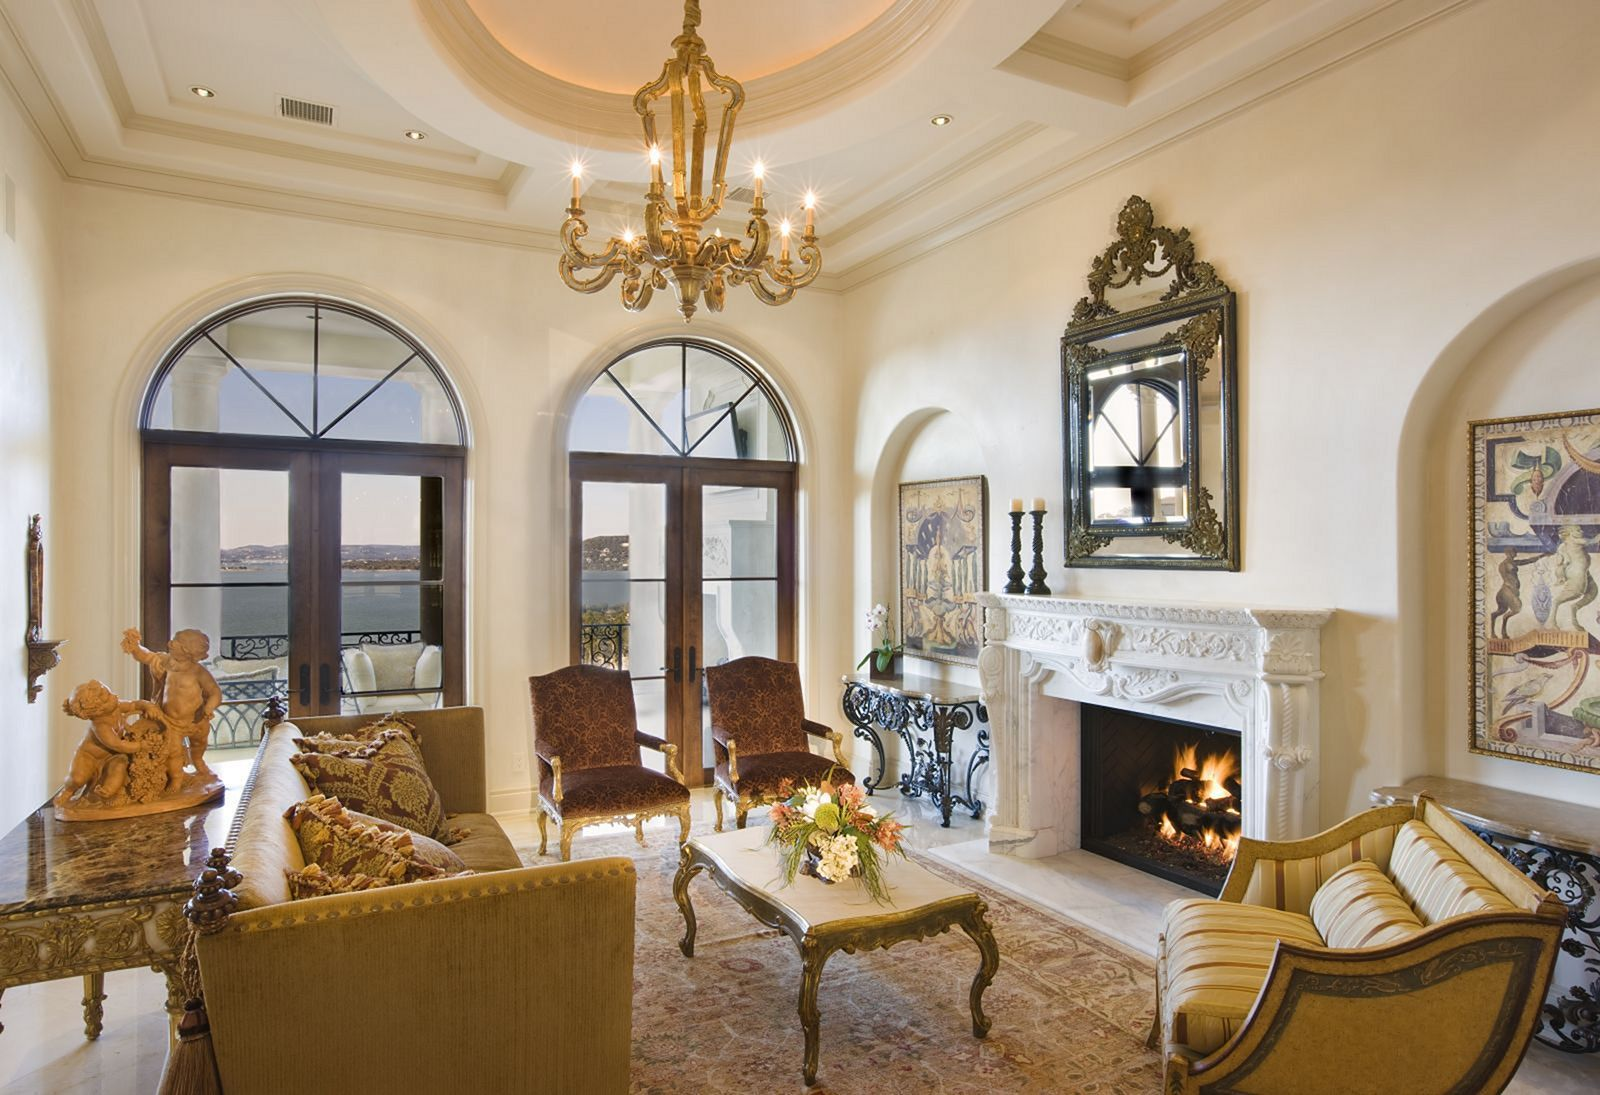 12 best european home interior ideas with awesome on home interior design ideas id=43949